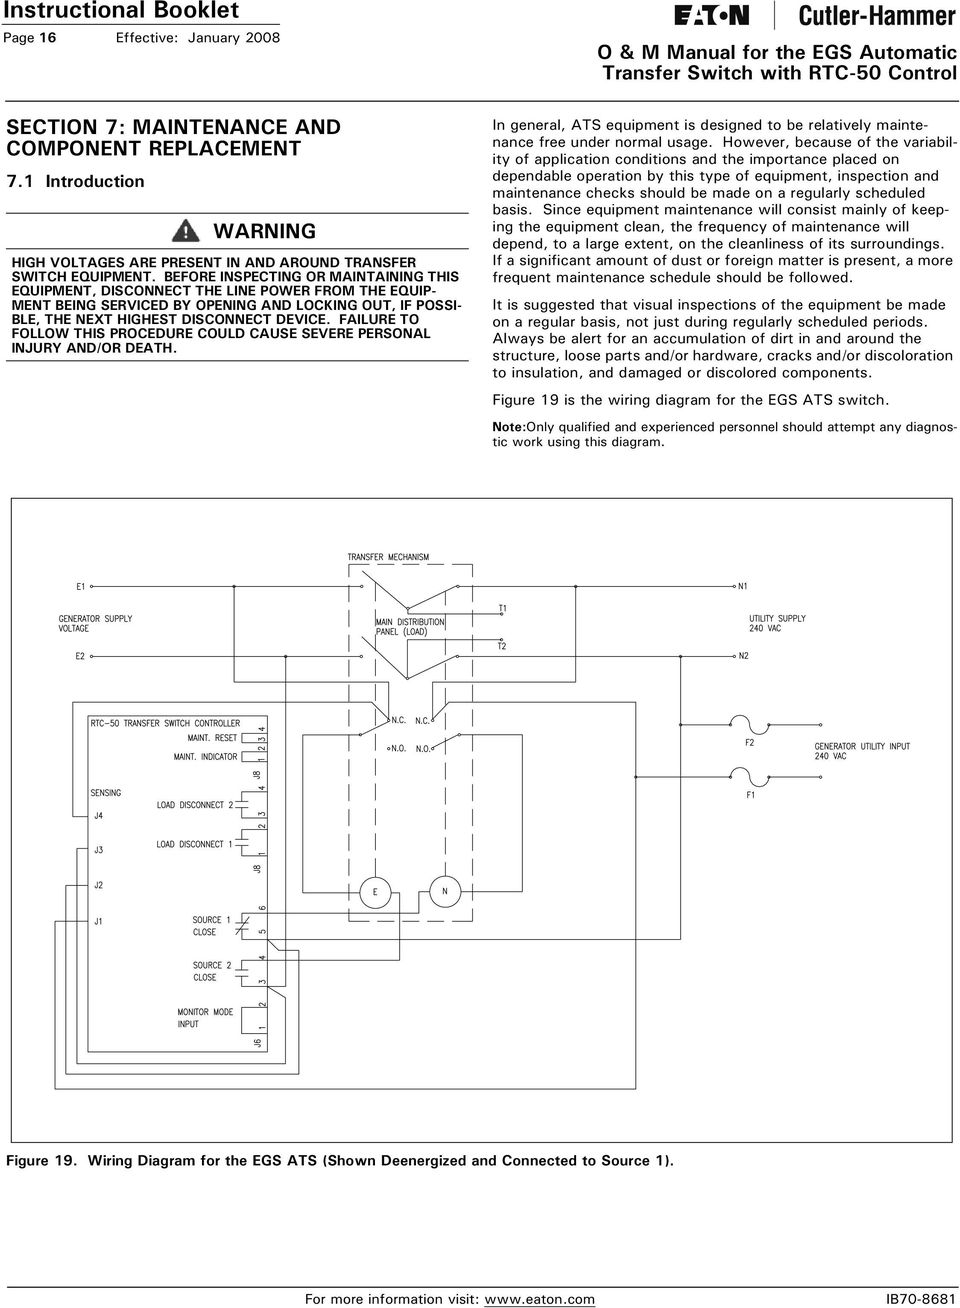 O M Manual For The Egs Automatic Transfer Switch With Rtc 50 Control Wiring Diagram Failure To Follow This Procedure Could Cause Severe Personal Injury And Or Death 17